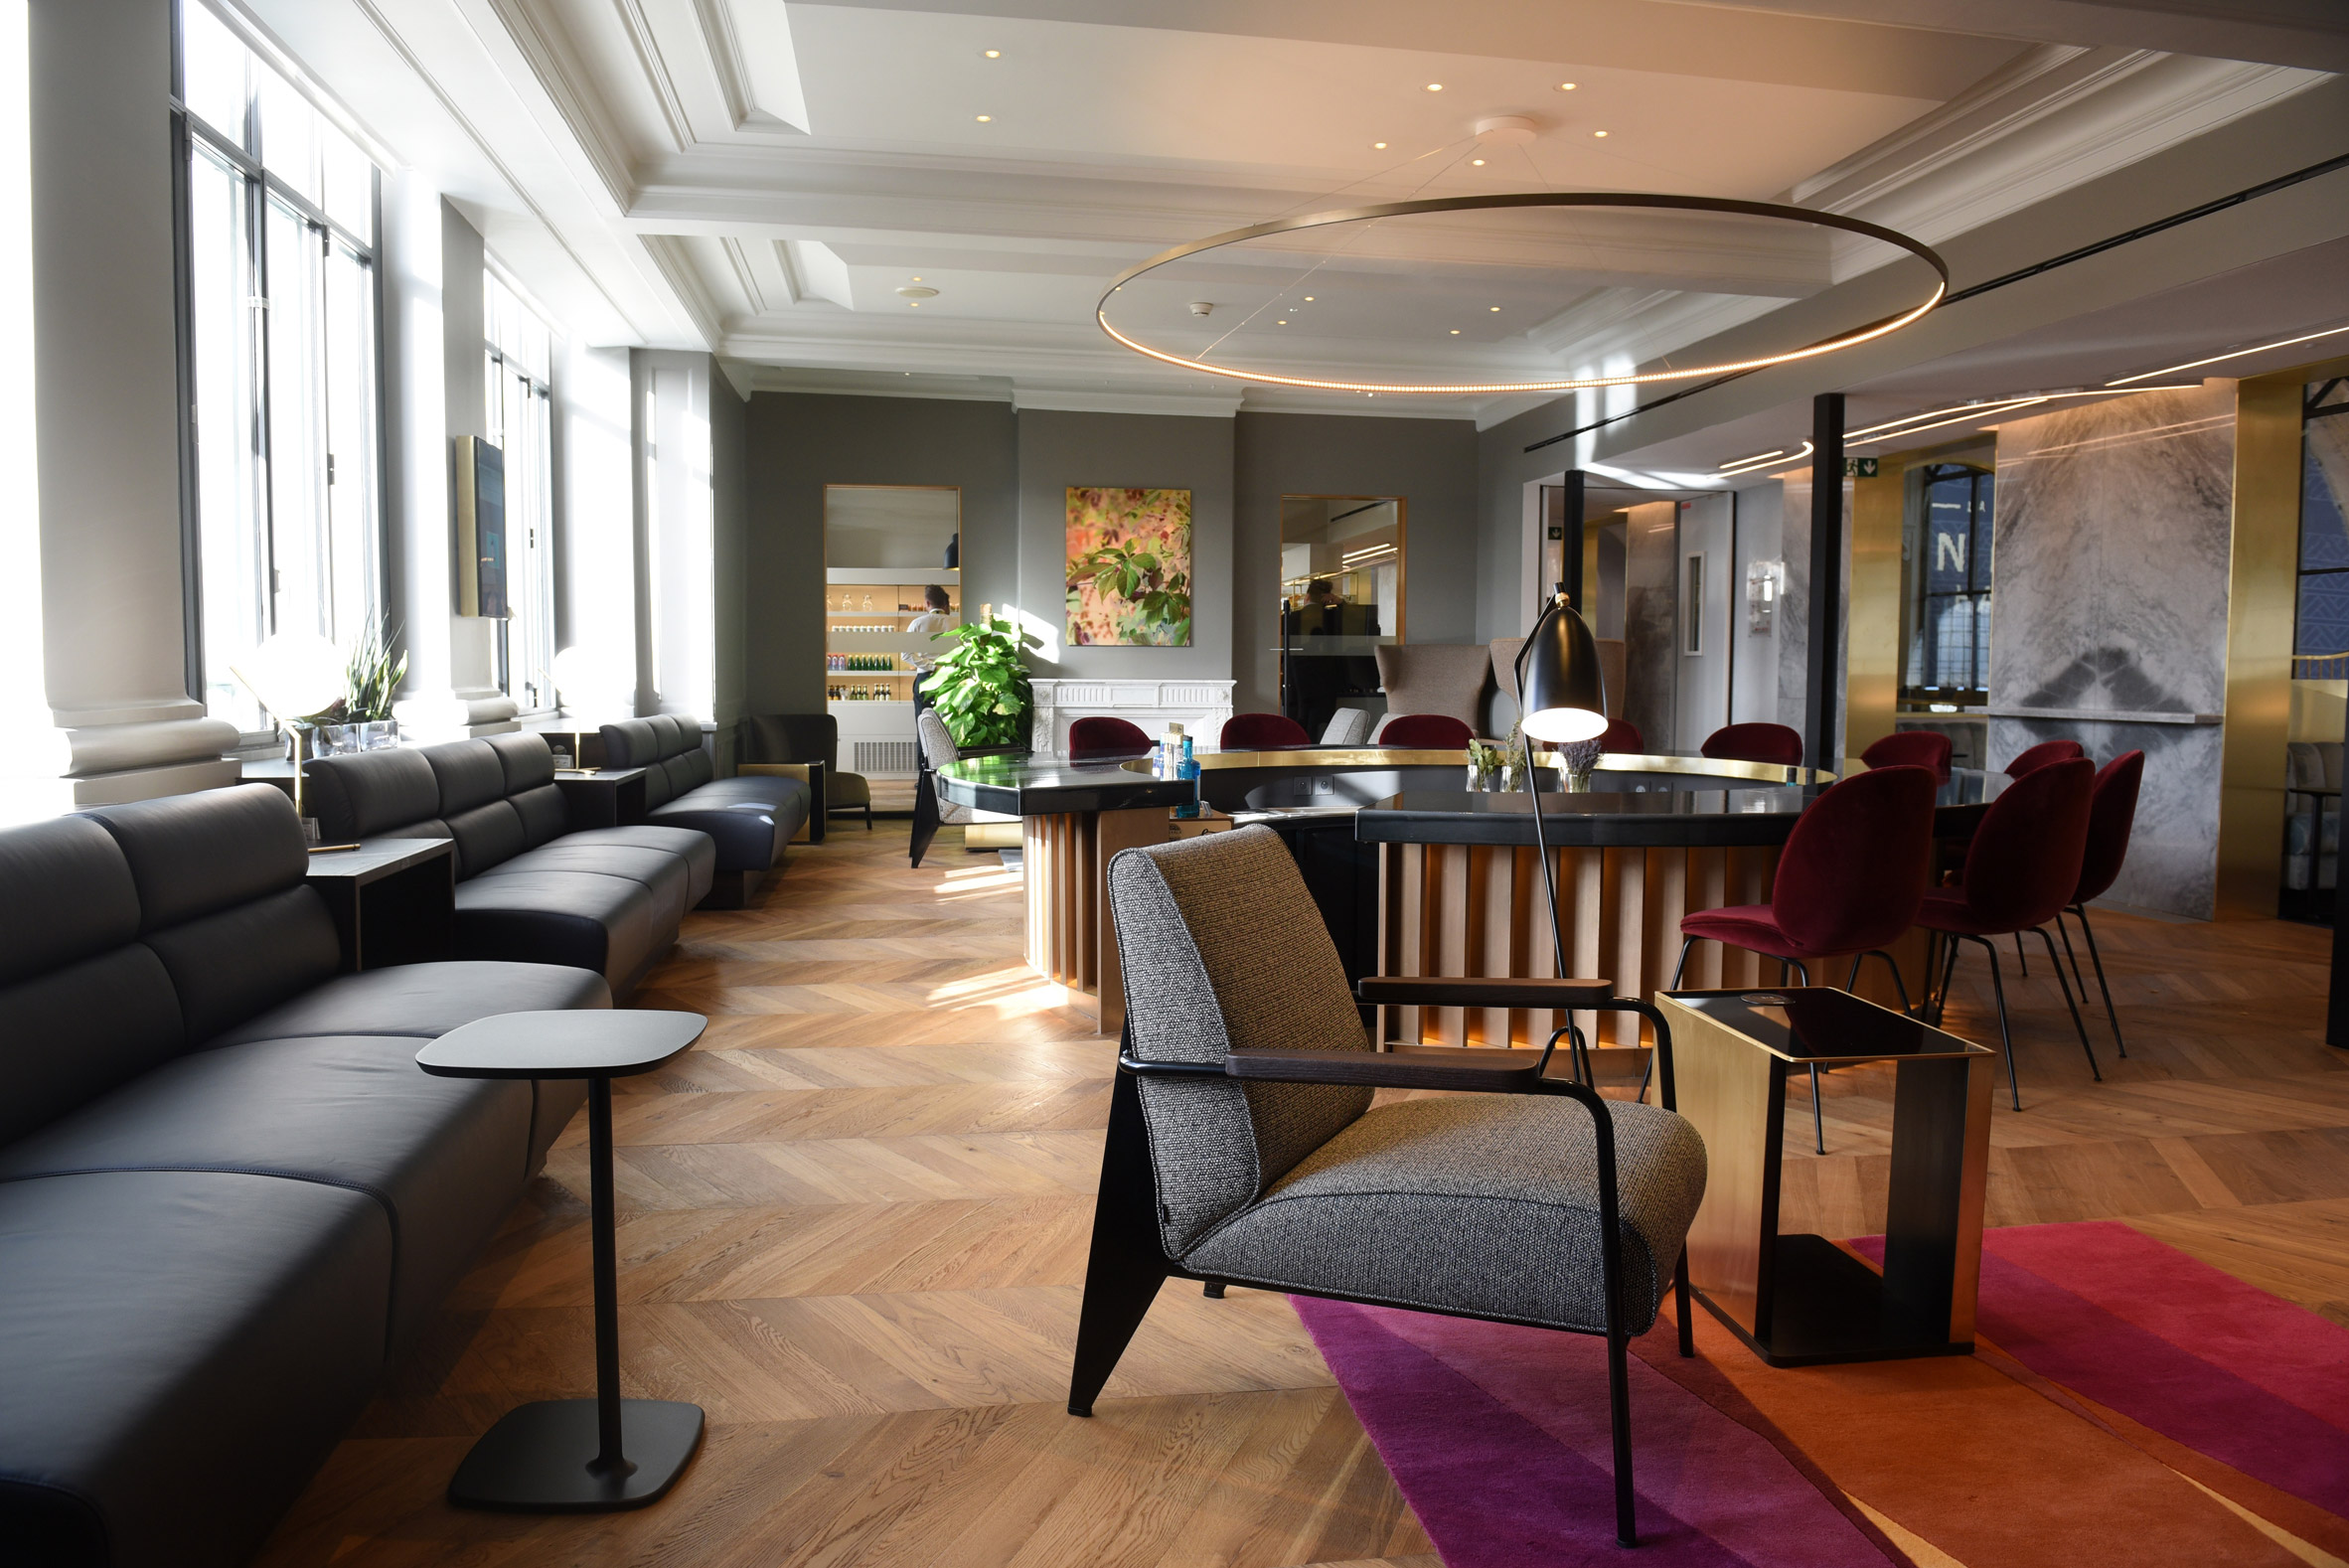 London Studio Softroom designs luxurious Eurostar Lounge in Paris eurostar lounge in paris London Studio Softroom designs luxurious Eurostar Lounge in Paris London Studio Softroom designs luxurious Eurostar Lounge in Paris 3